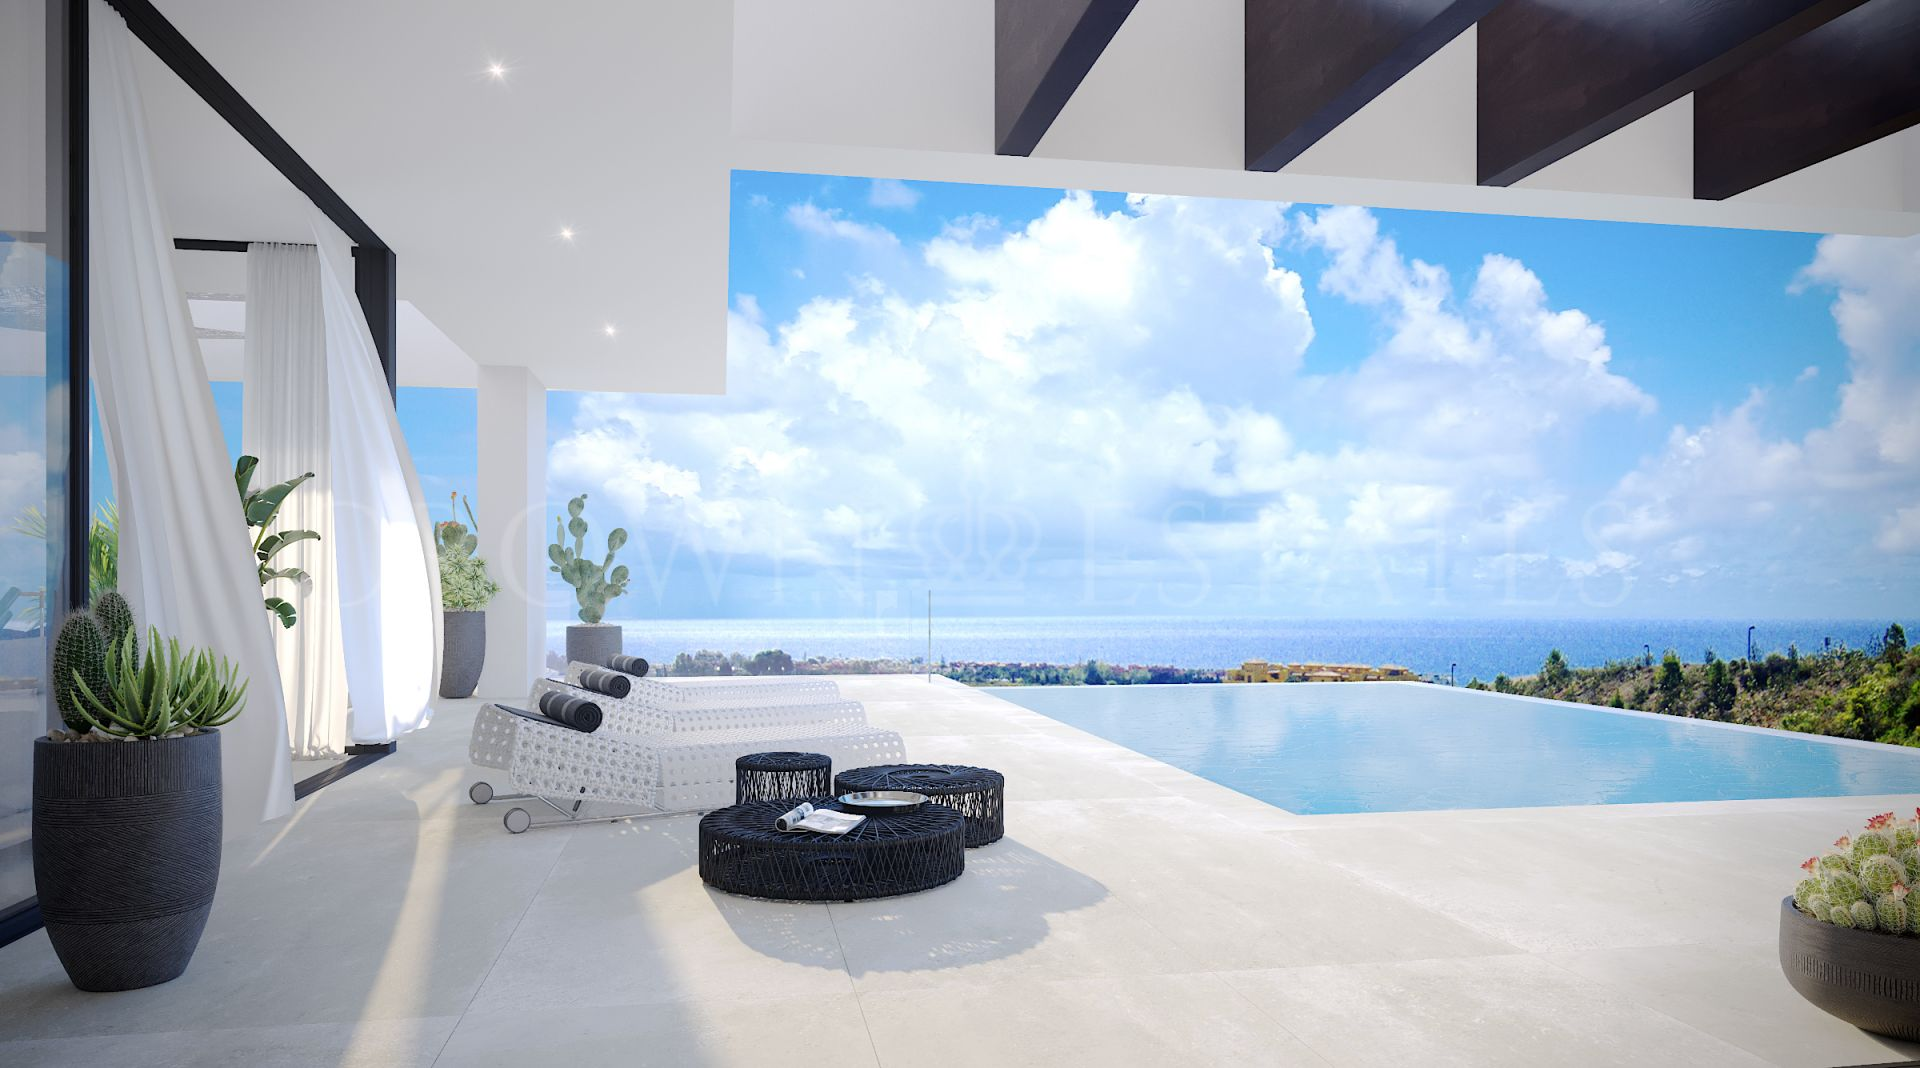 The View Luxury Villas, impressive villas with stunning views in the New Golden Mile